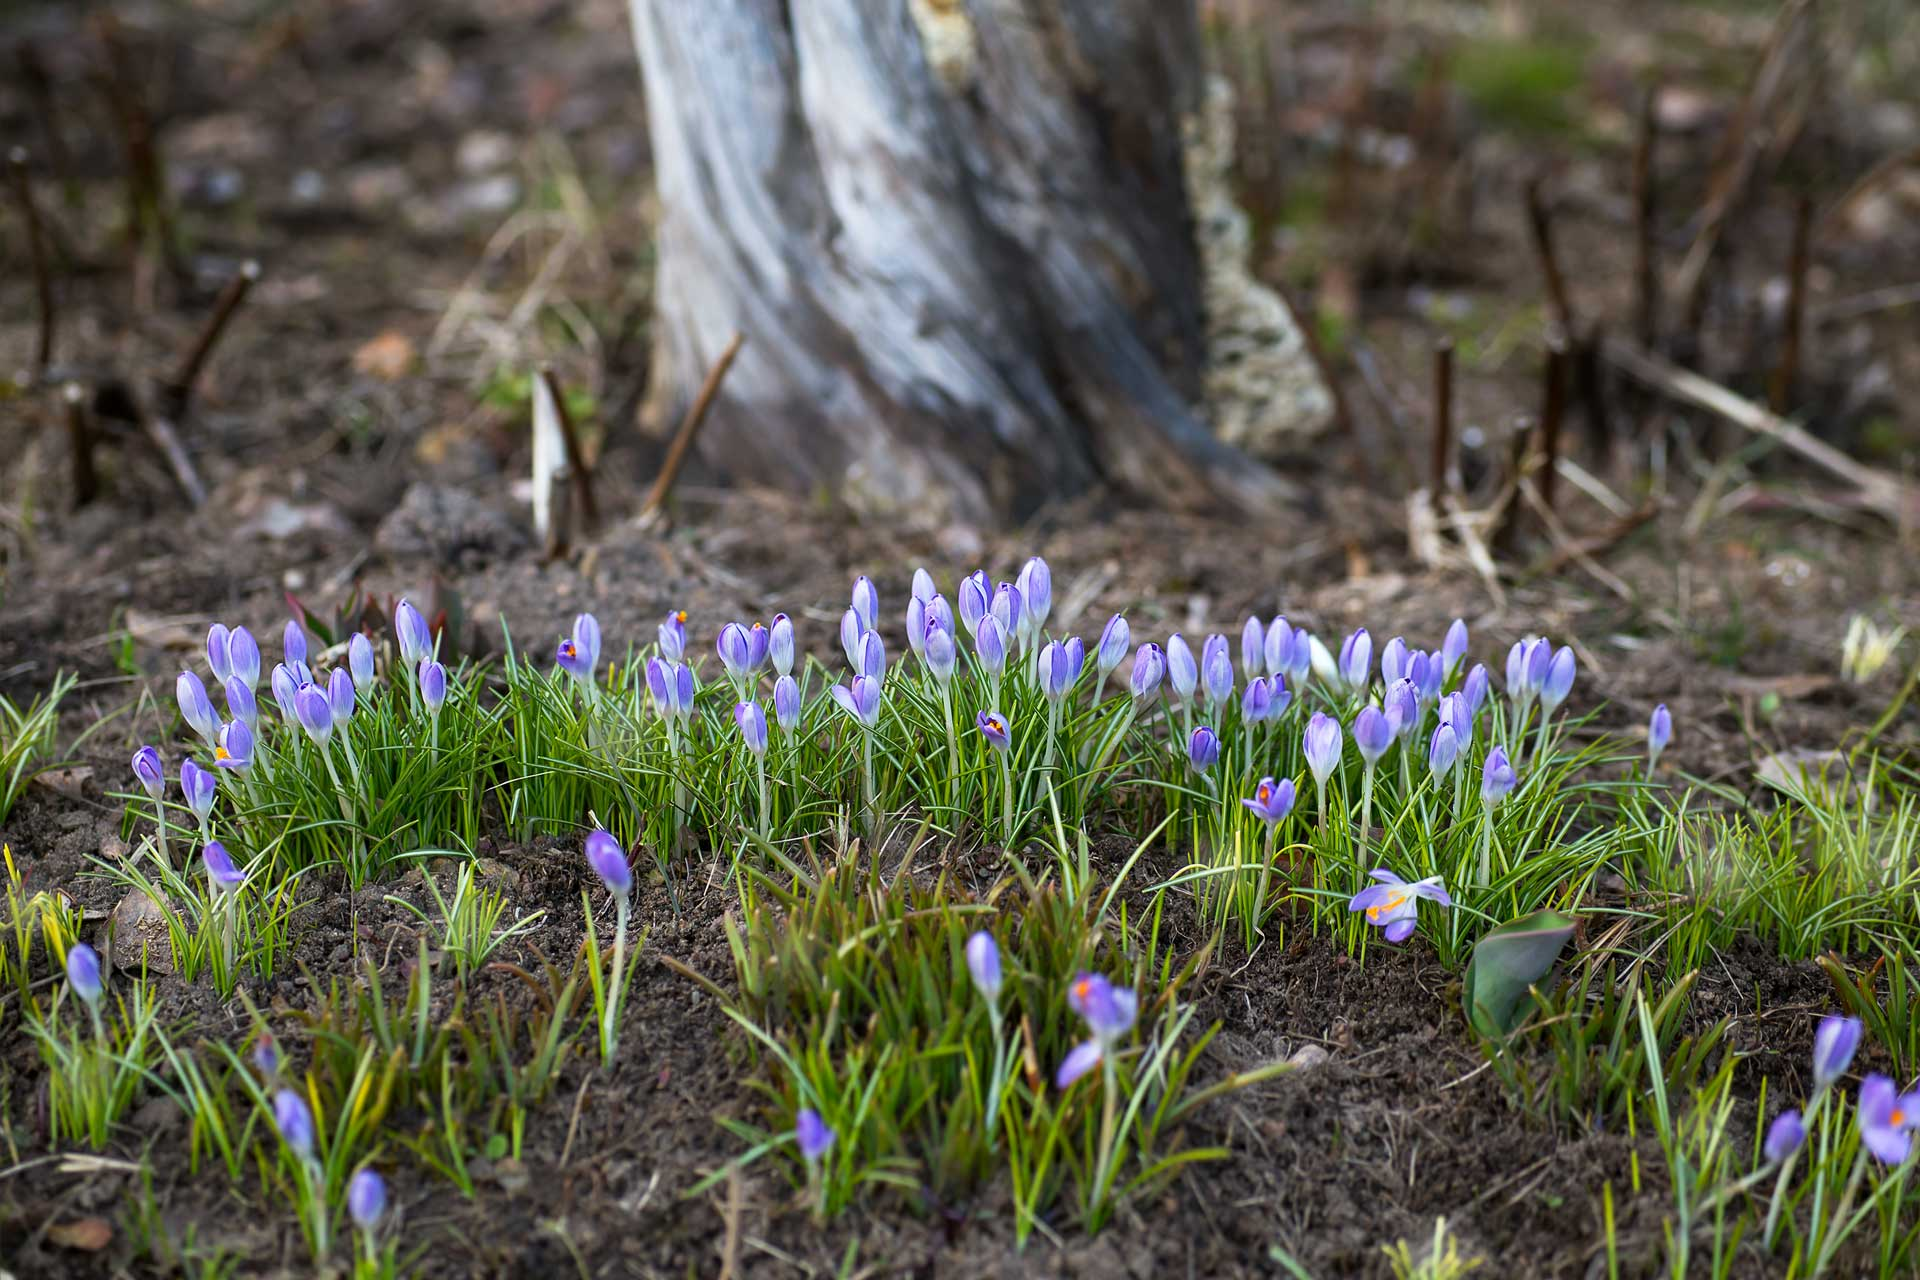 image of fresh wild flowers that depict professionally cleaned carpets will reduce or eliminate carpet odors